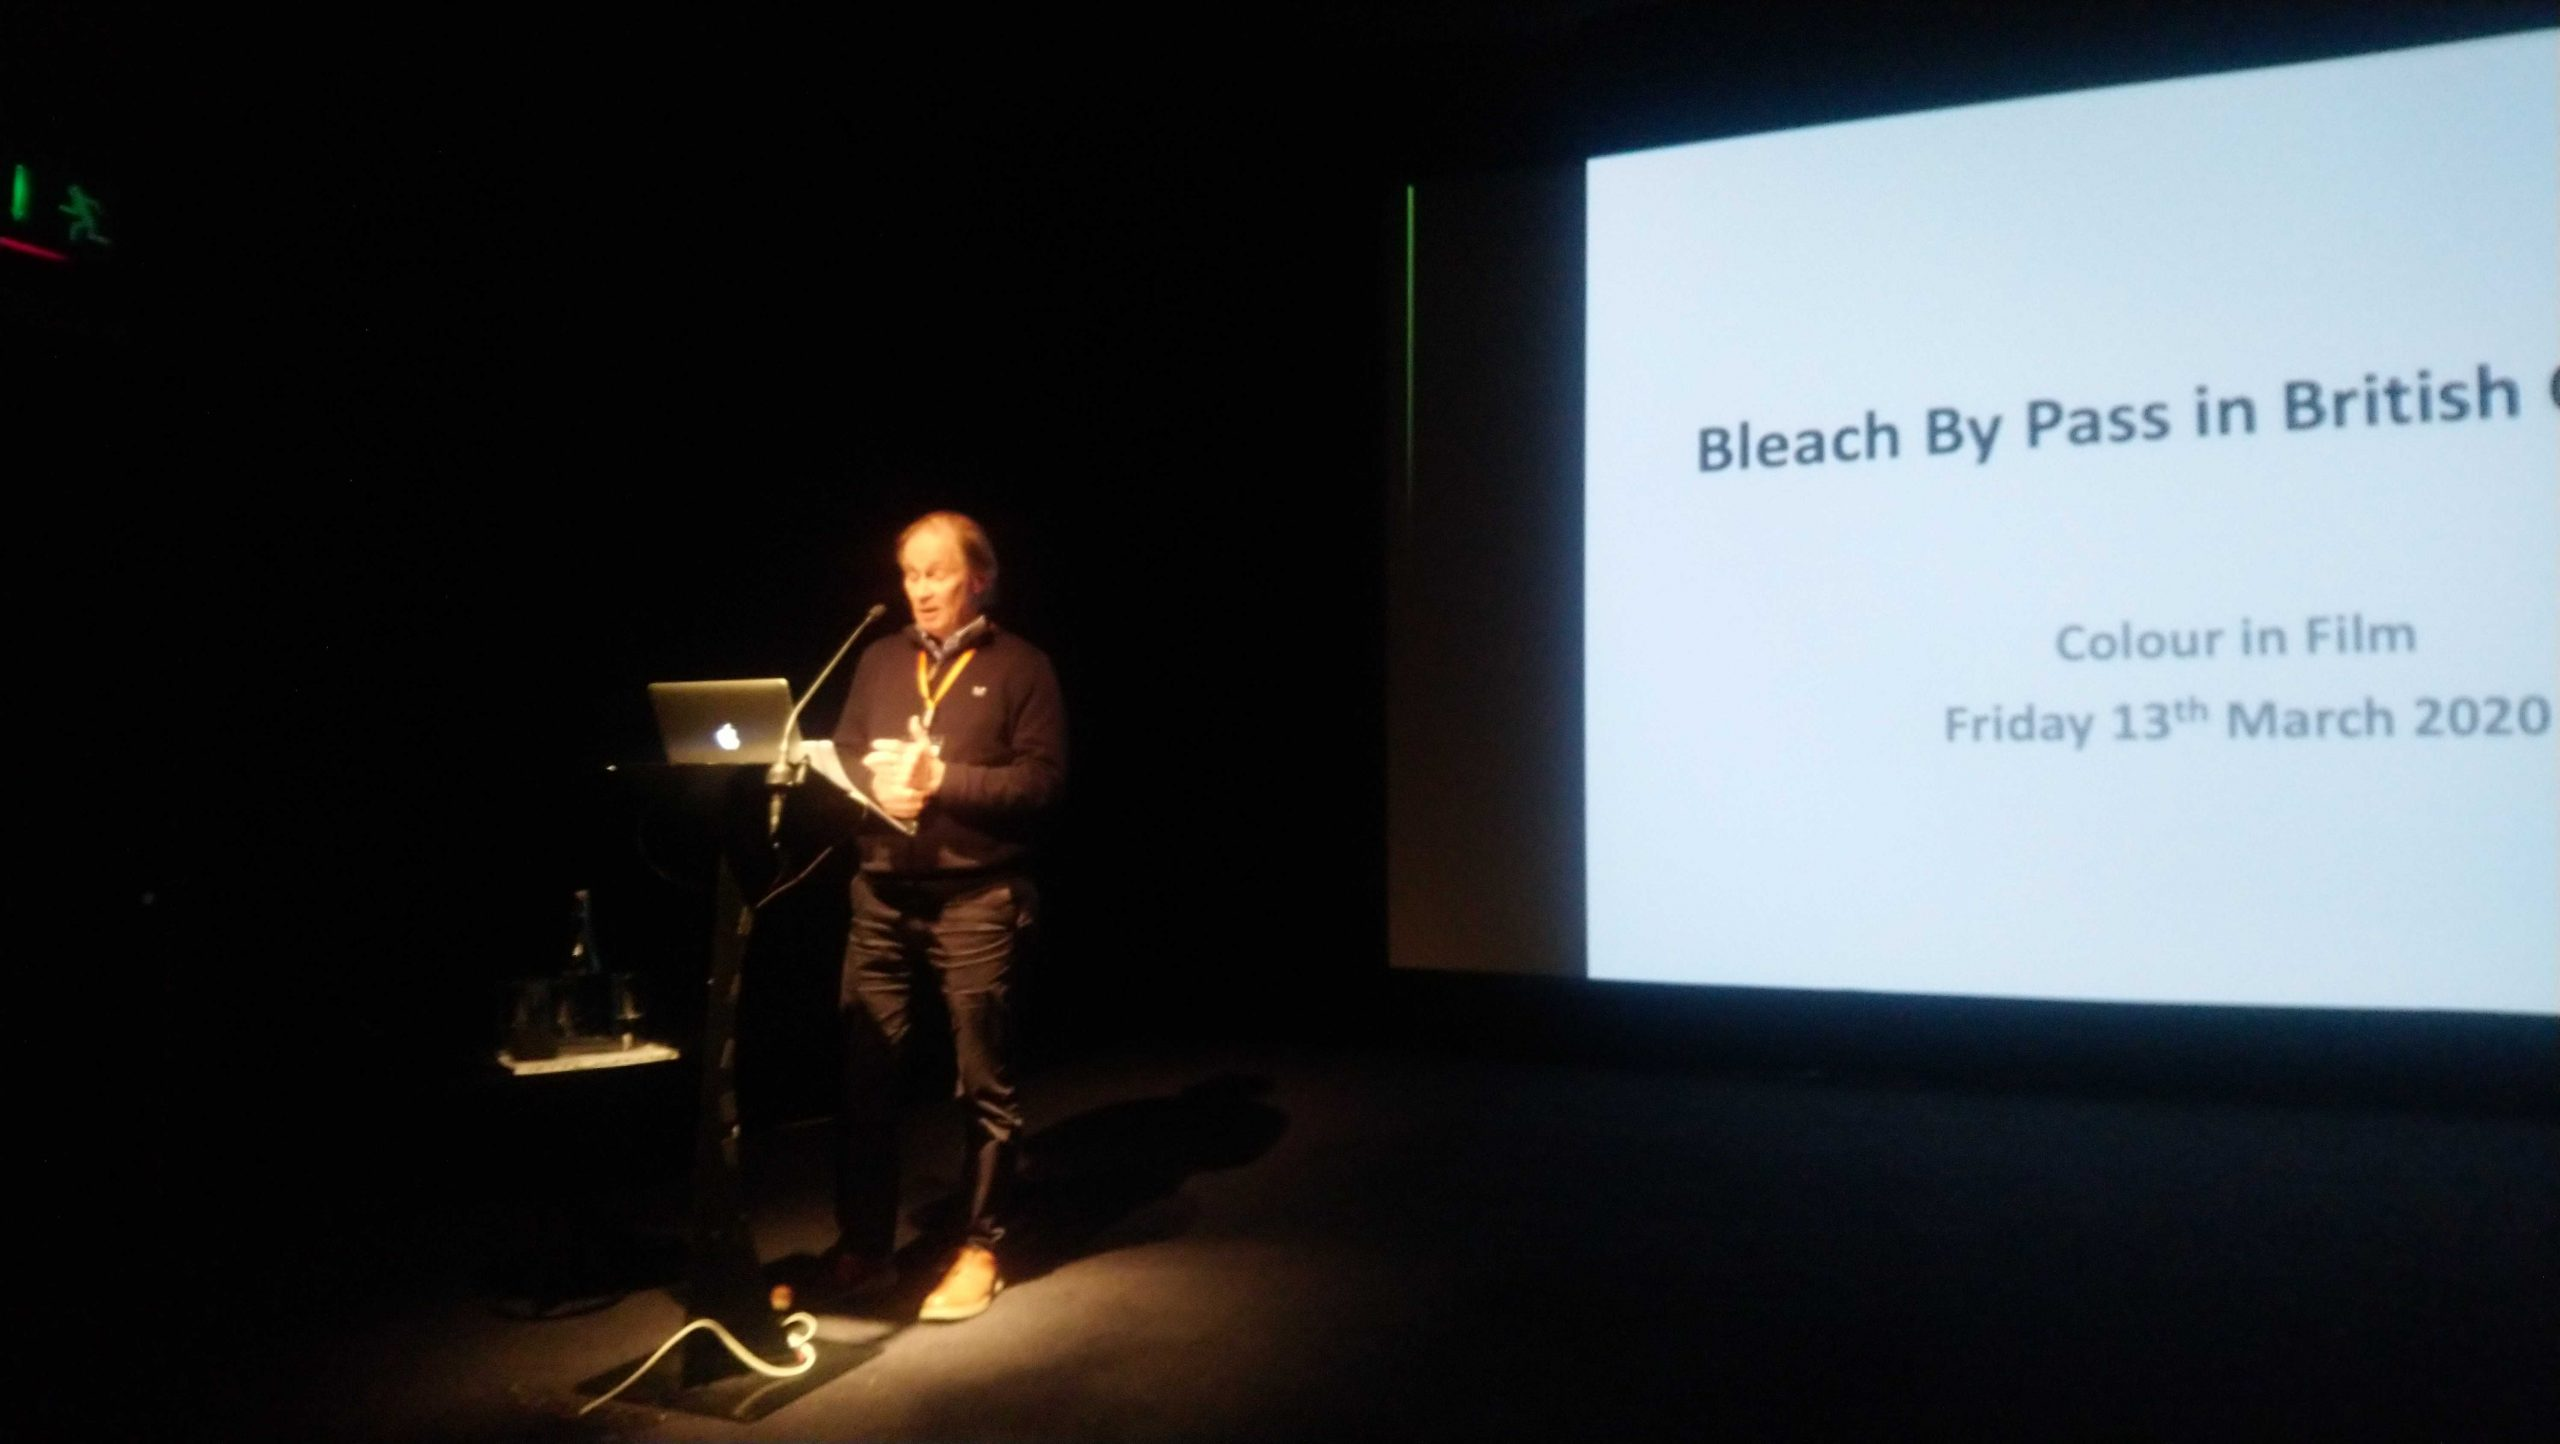 Paul Collard, the BFI speaker, presenting at Colour in Film 2020